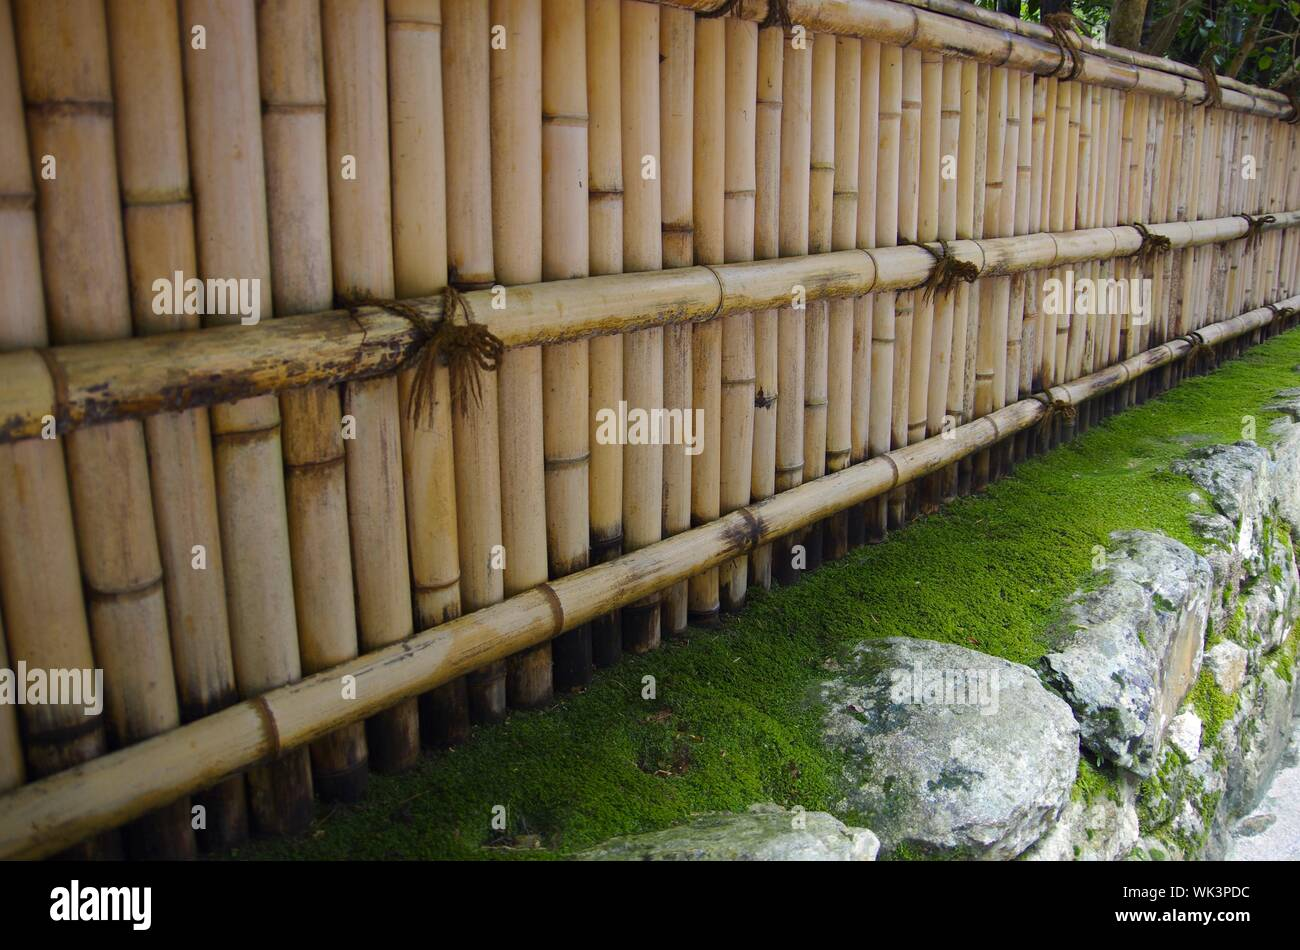 ornamental bamboo fence.htm bamboo fence garden stock photos   bamboo fence garden stock  bamboo fence garden stock photos